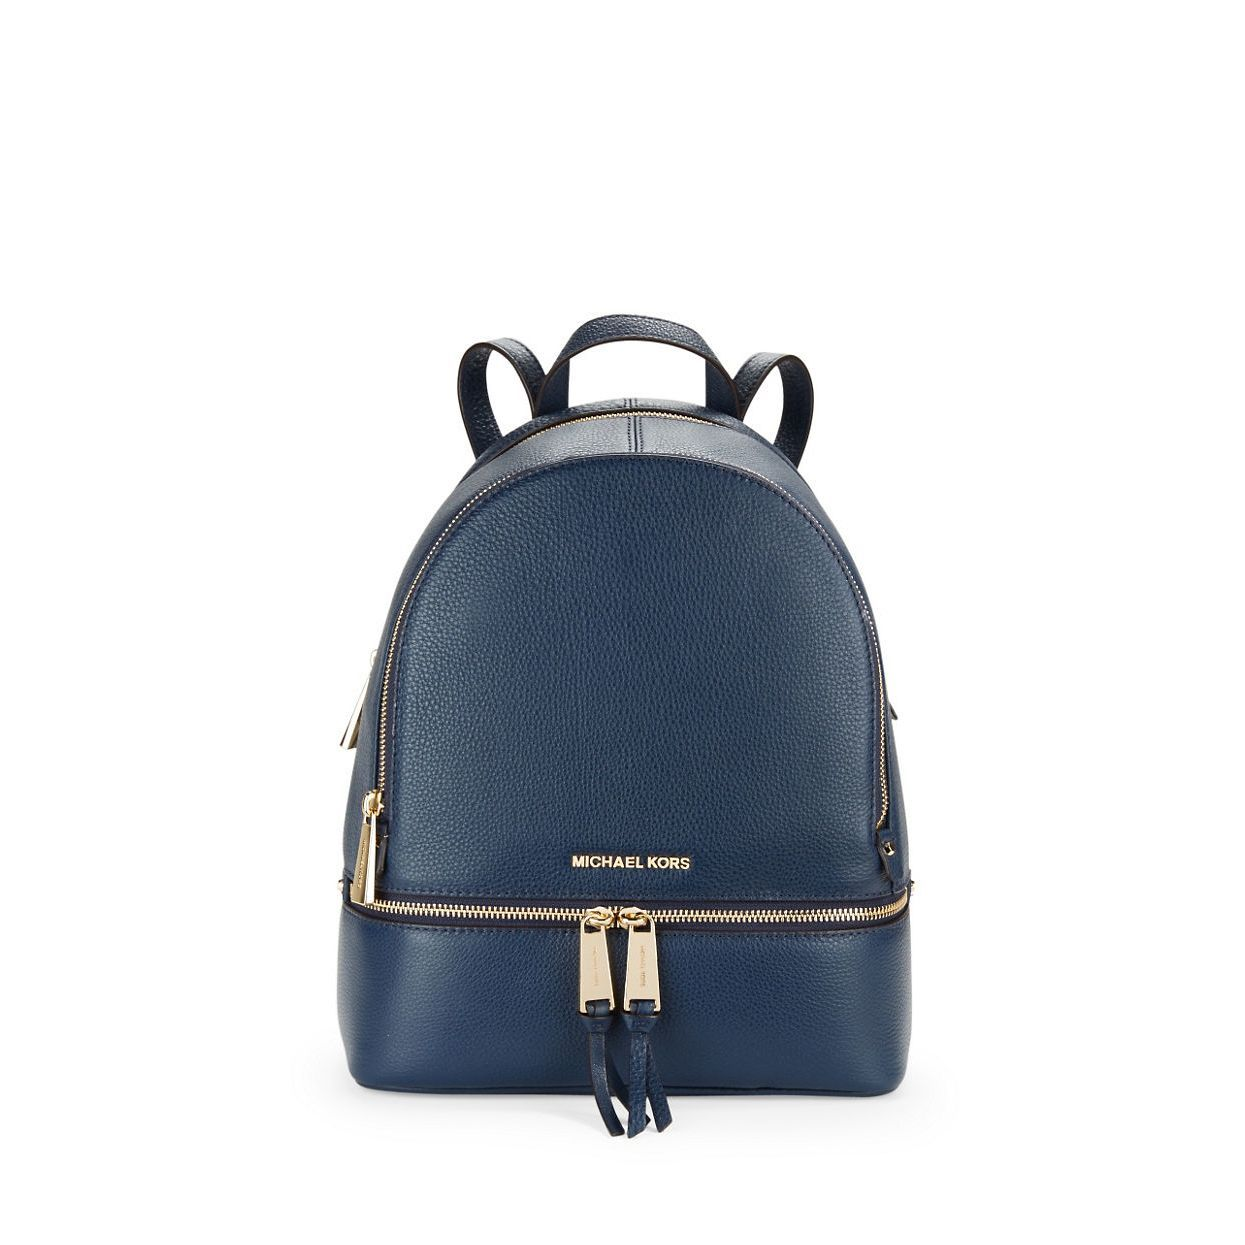 00d382dd8b Michael Kors Rhea Blue Leather Zip Admiral Small Fashion Backpack ...